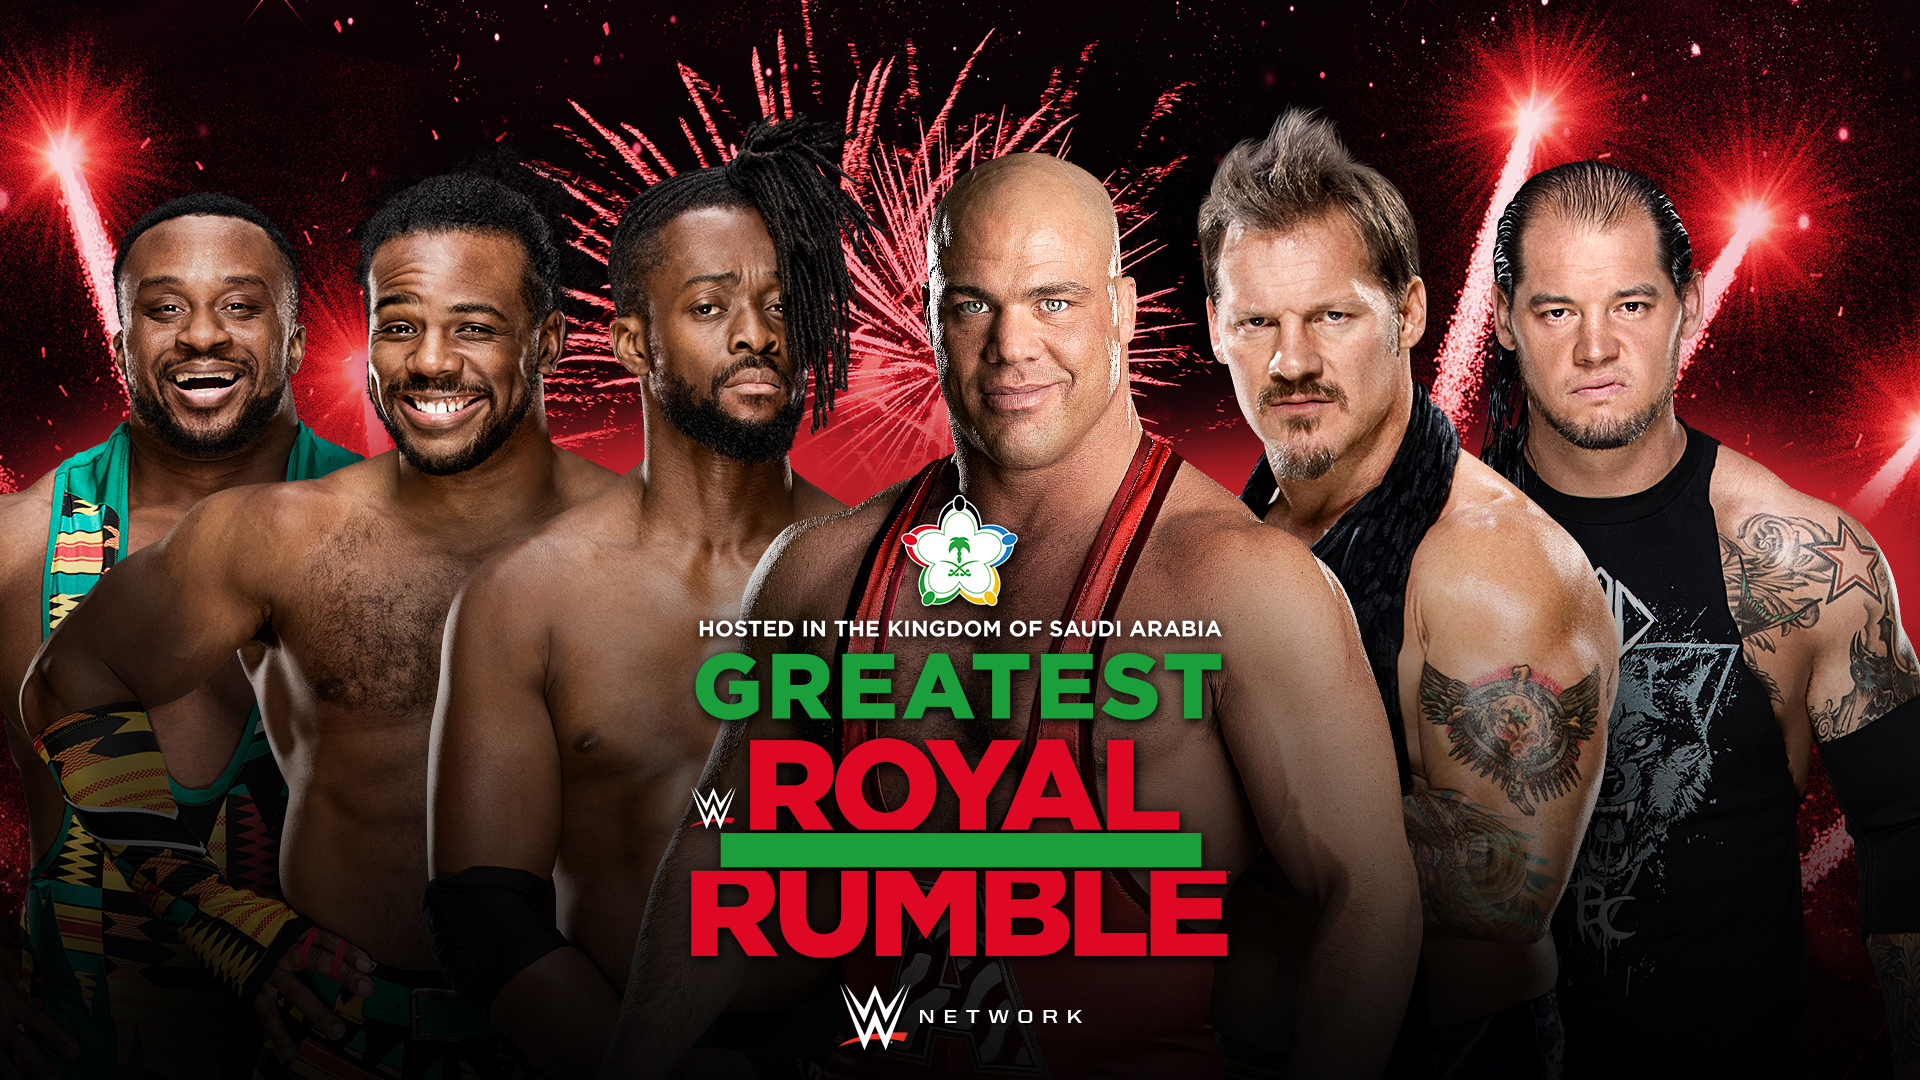 WWE's Greatest Royal Rumble a sellout in Jeddah